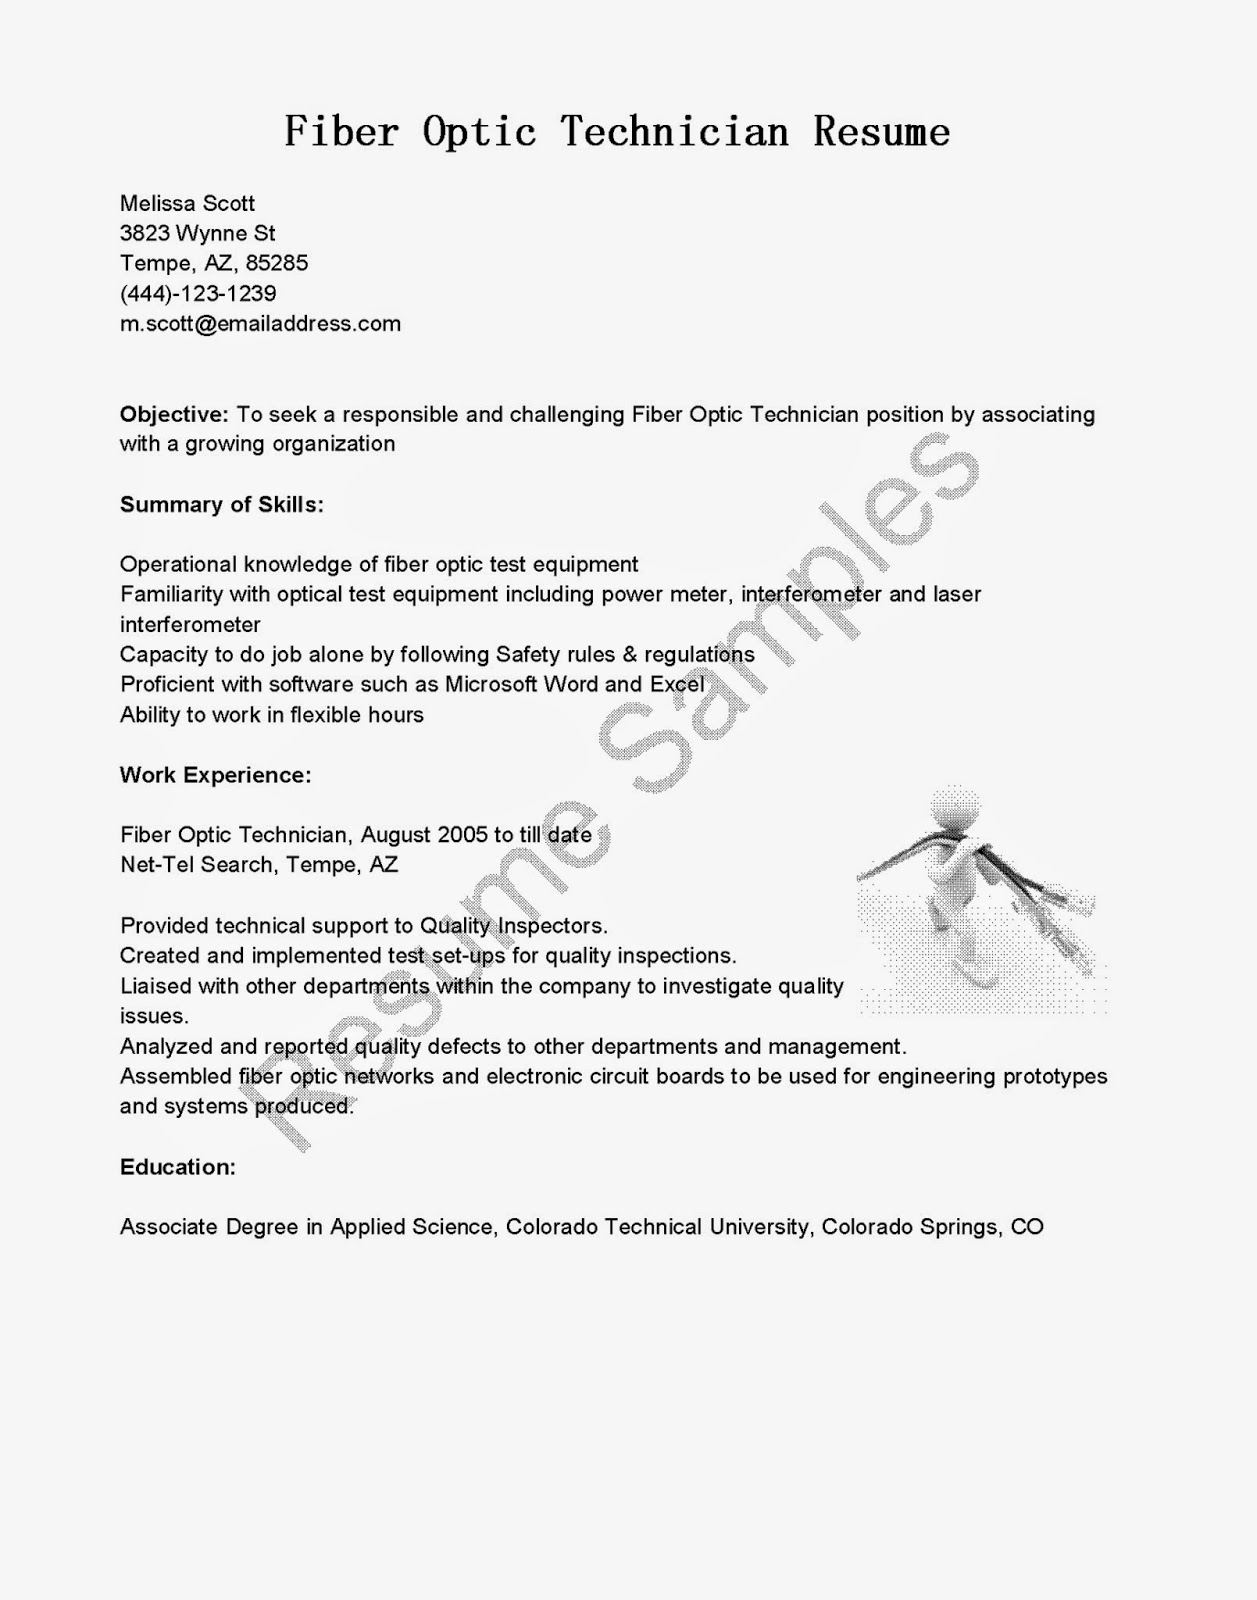 resume samples fiber optic technician resume sample